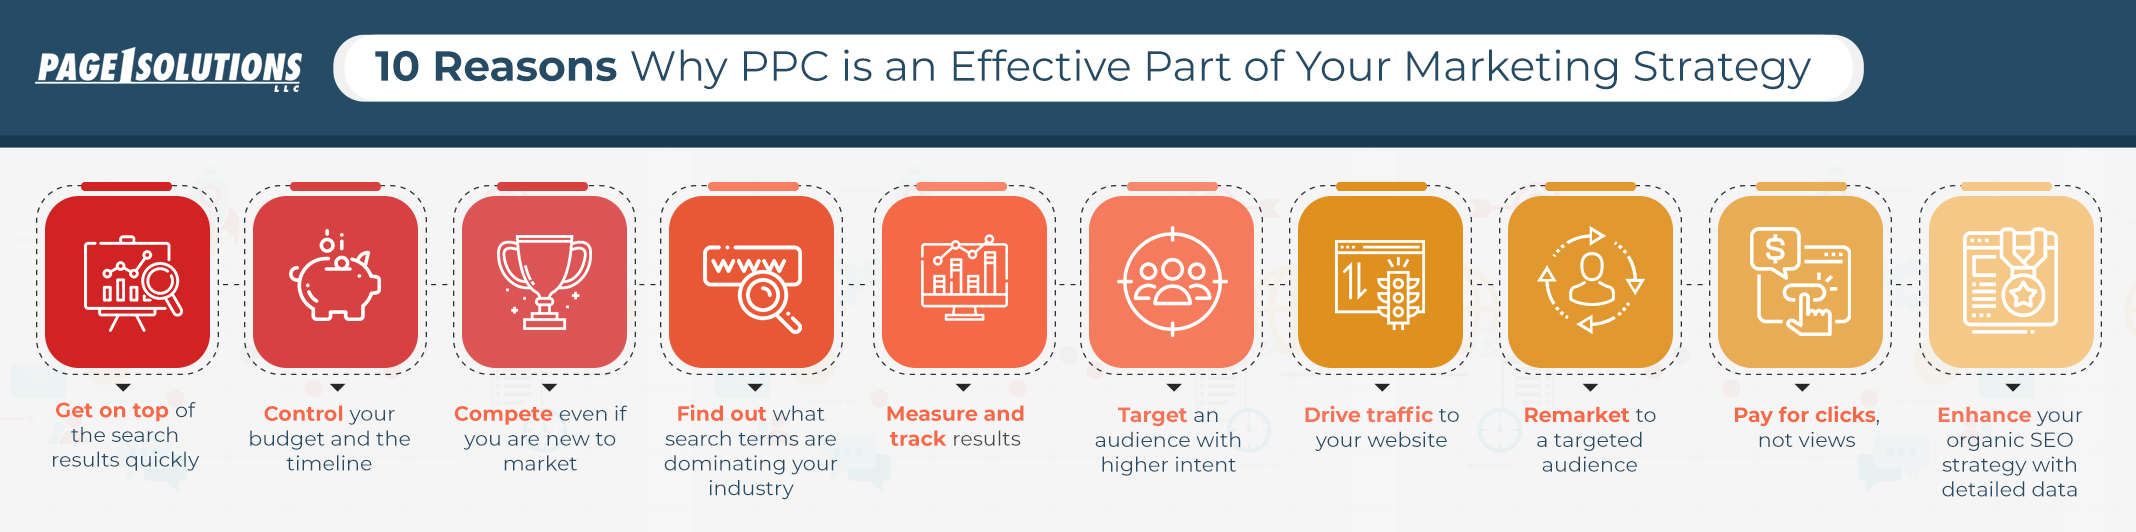 10 Reasons Why PPC Is an Effective Part of Your Marketing Strategy